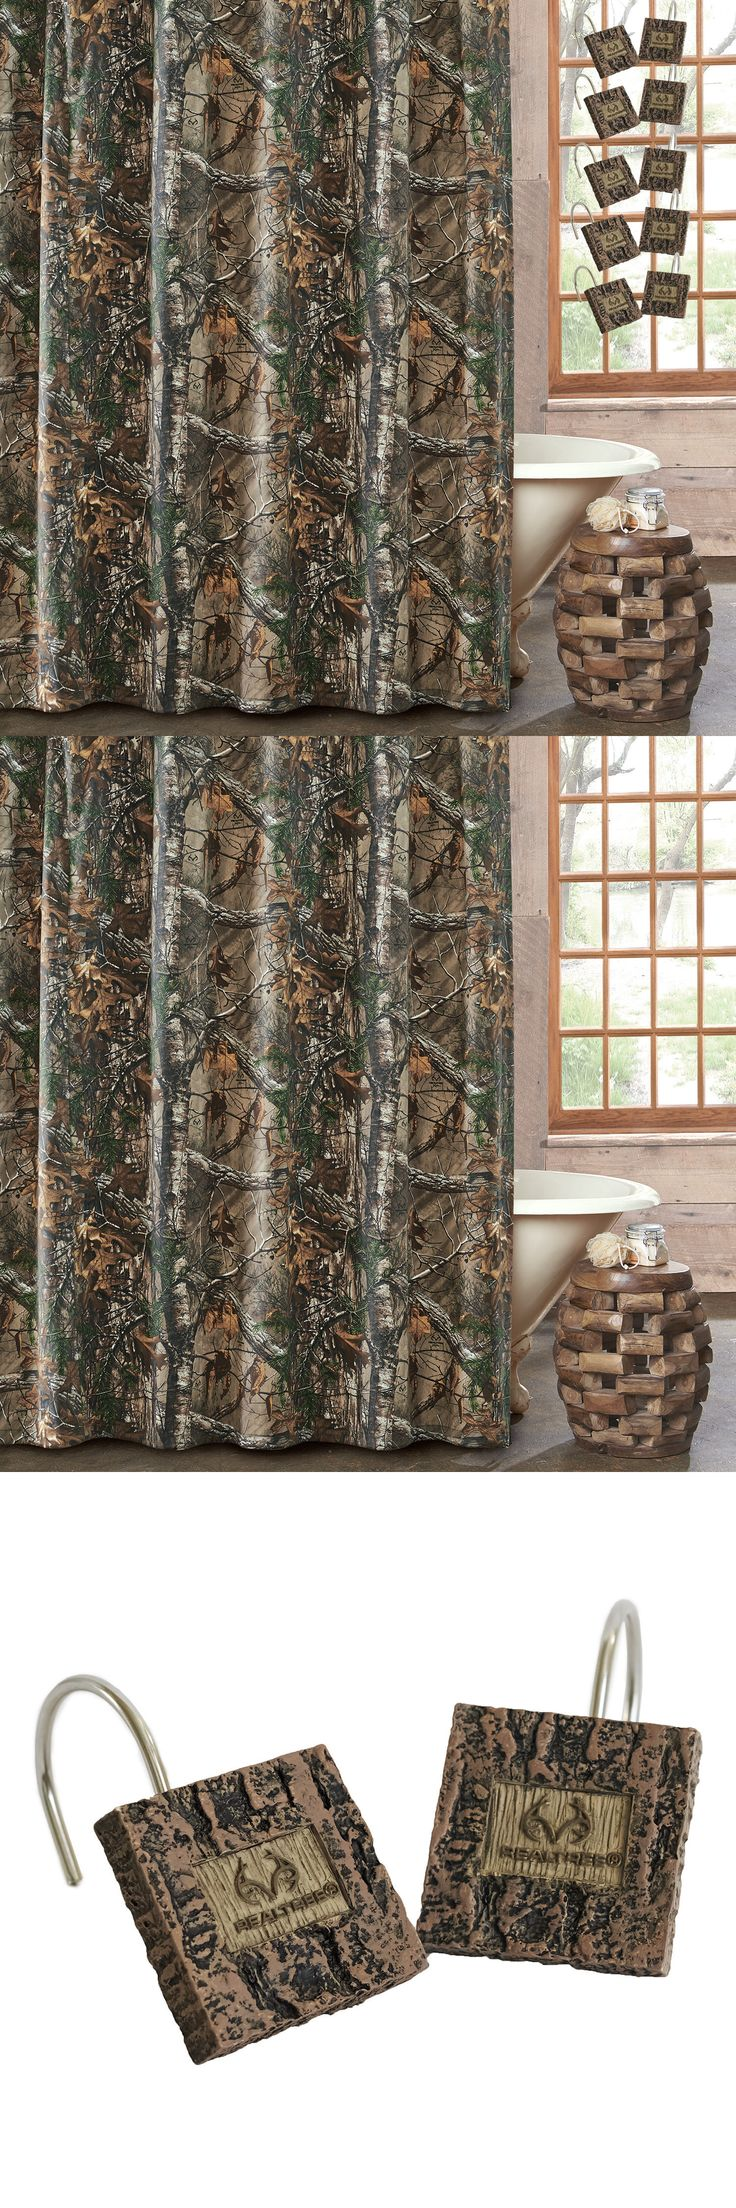 Christmas shower curtains on ebay - Shower Curtains 20441 Realtree Camouflage Xtra Camo Fabric Shower Curtain 72x72 Or W Camo